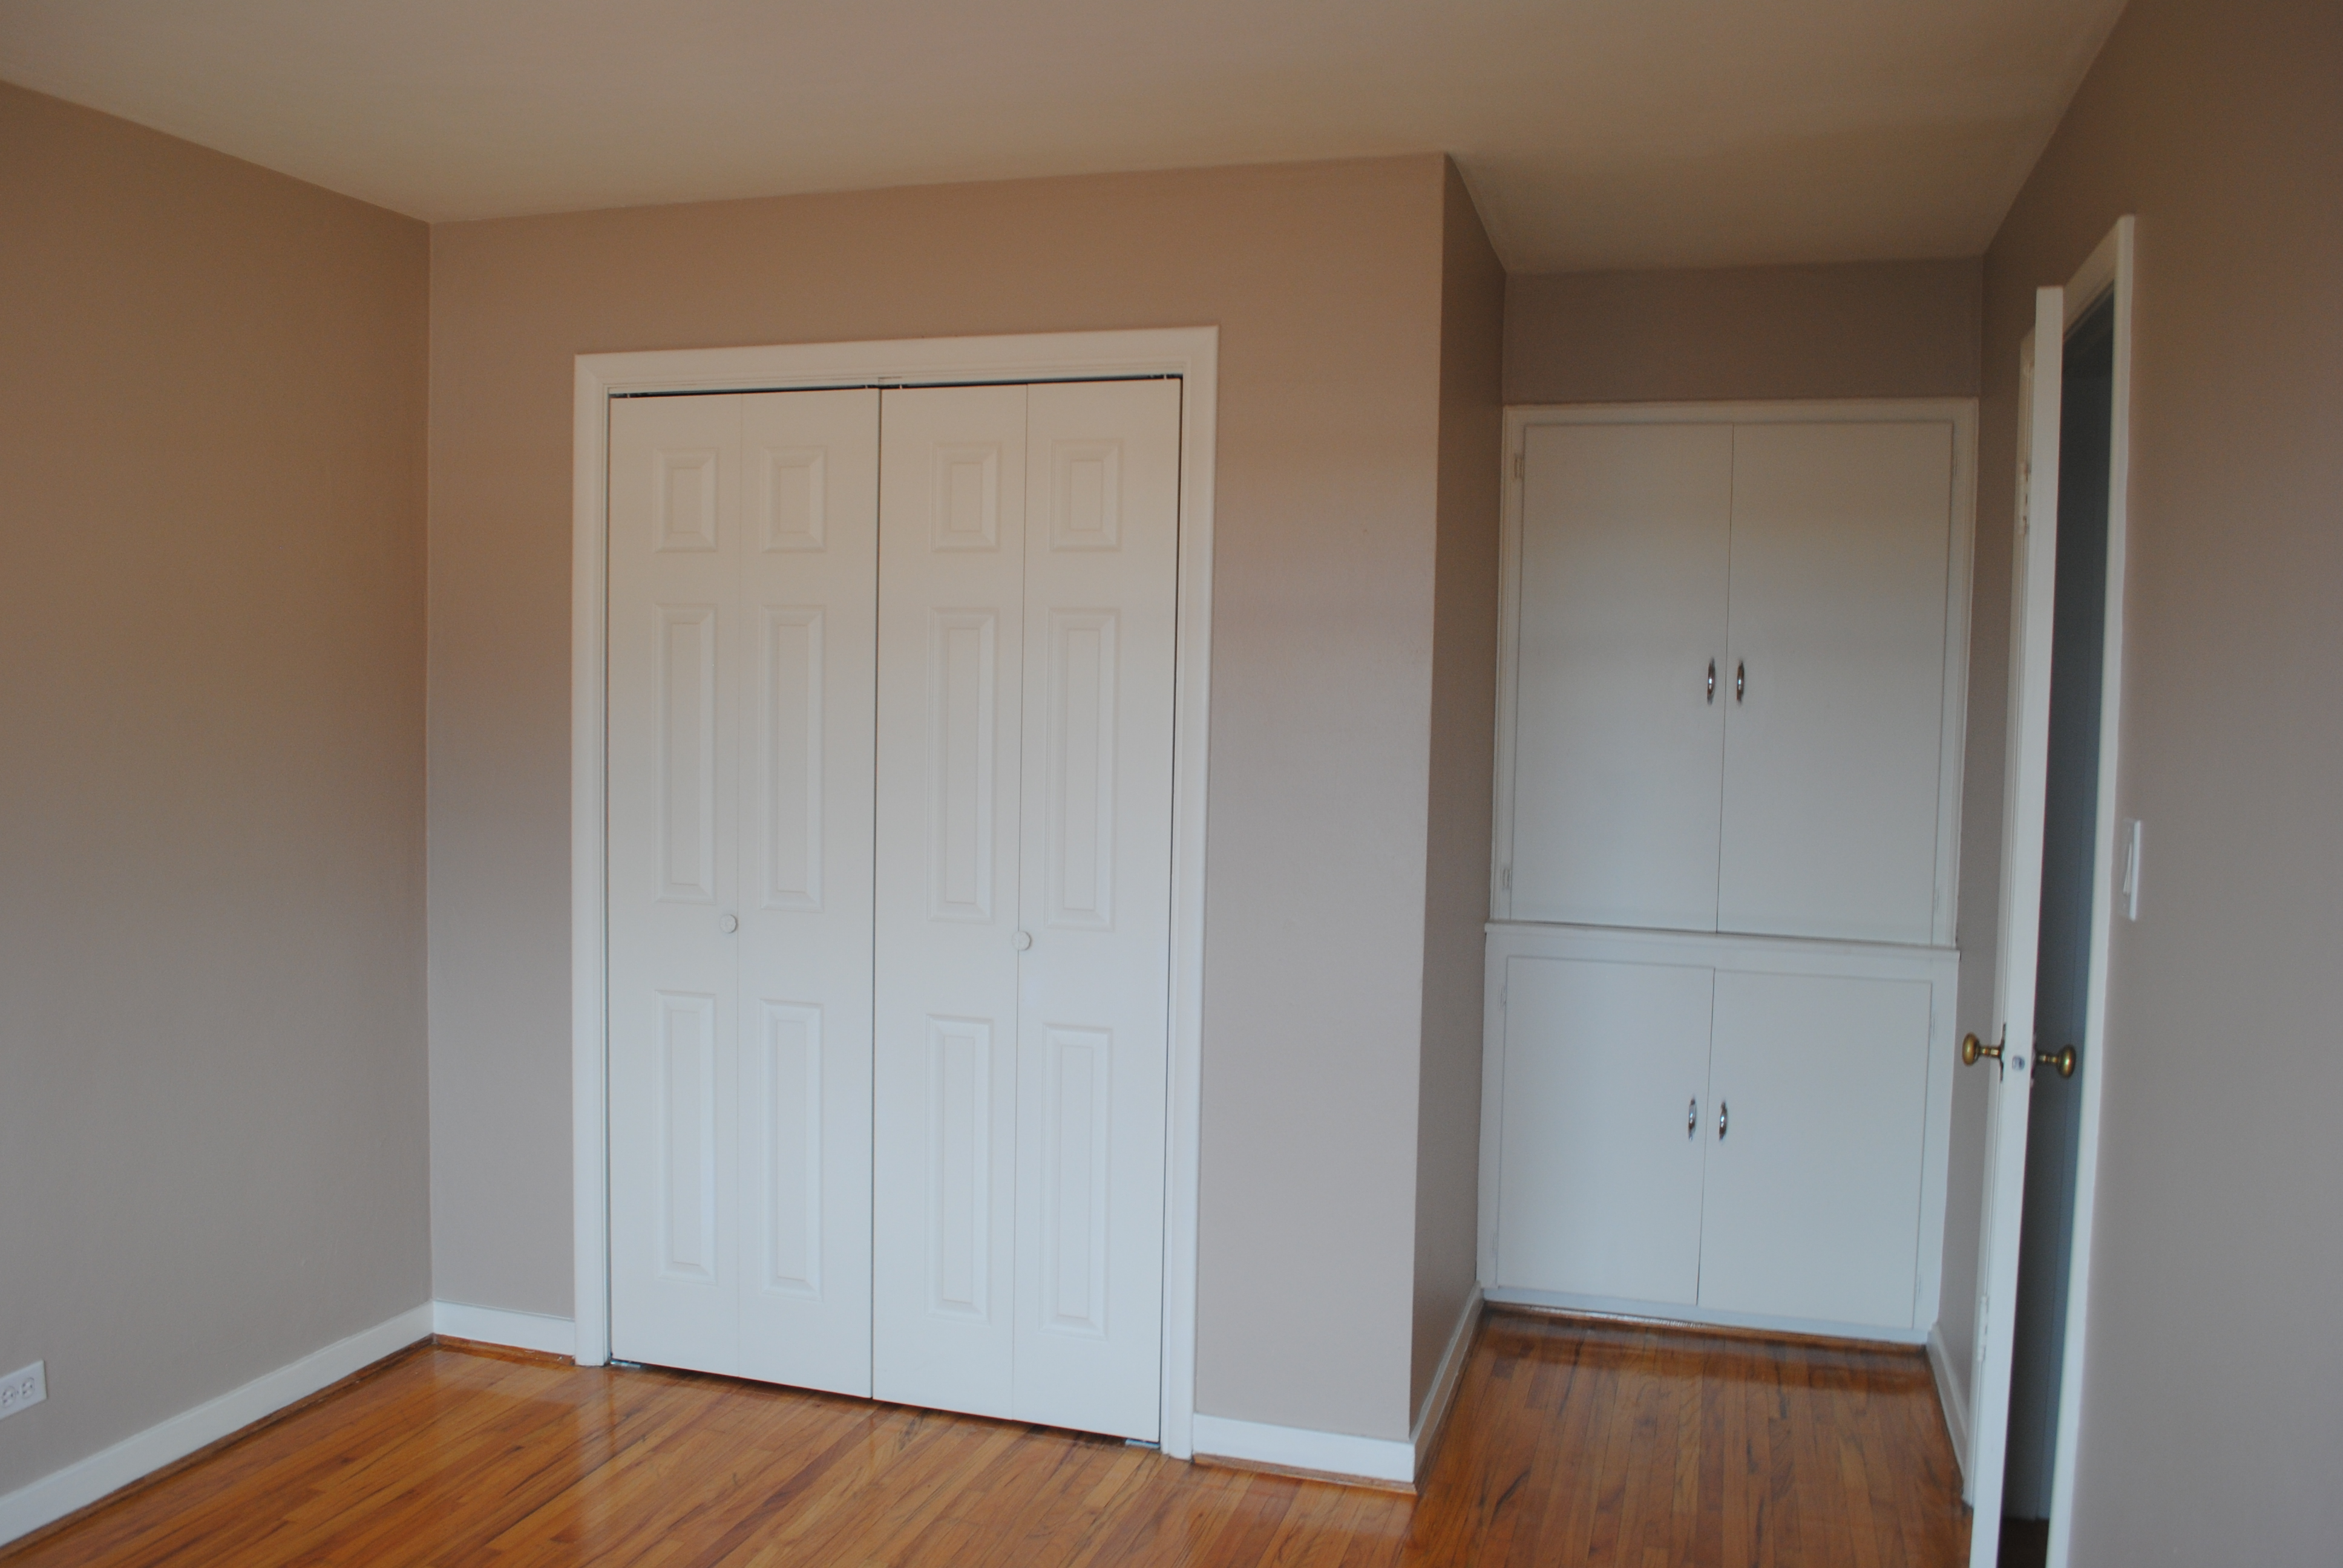 Bedroom l 39 amour chez nous - Built in closet for small bedroom ...